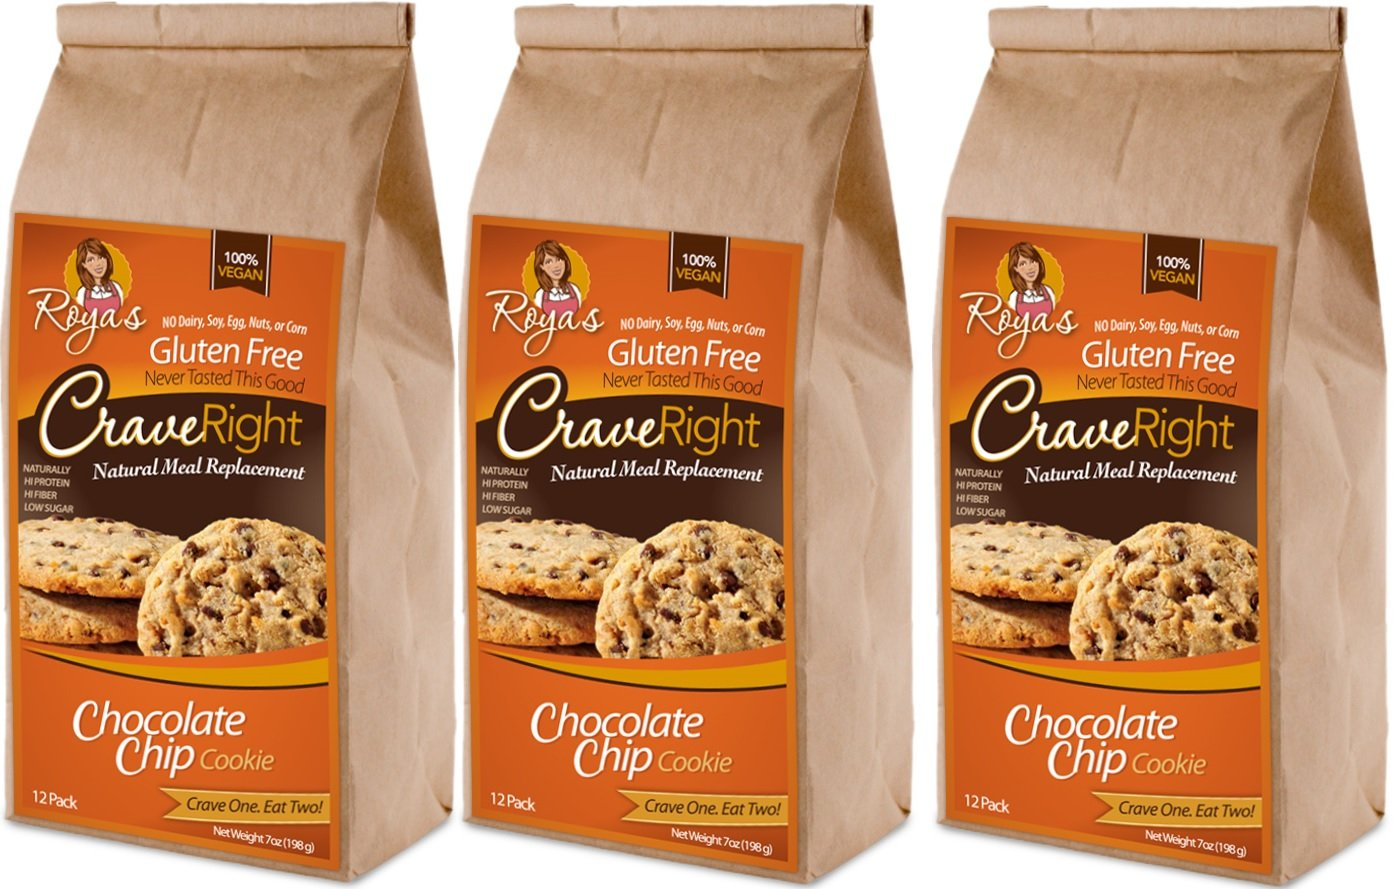 Gluten-free, 100% Vegan - 7 Oz, Containing 12 Individual Cookies (Chocolate Chip) (Pack of 3)